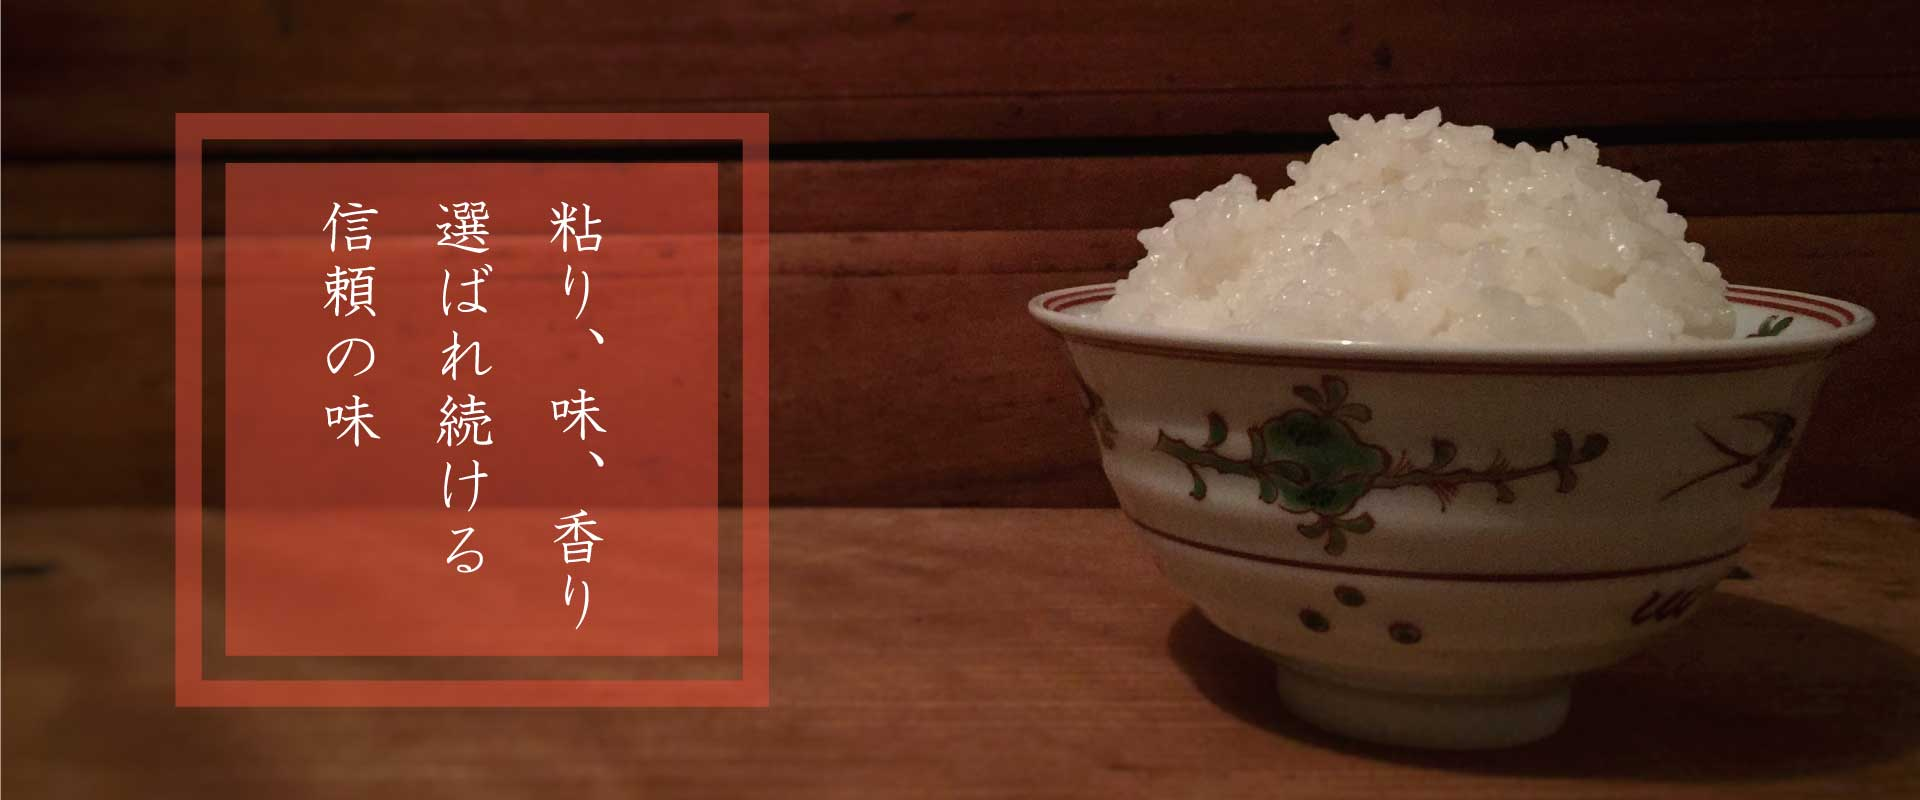 "The features of our rice include ""stickiness"", ""unique flavor"", and ""scent"""